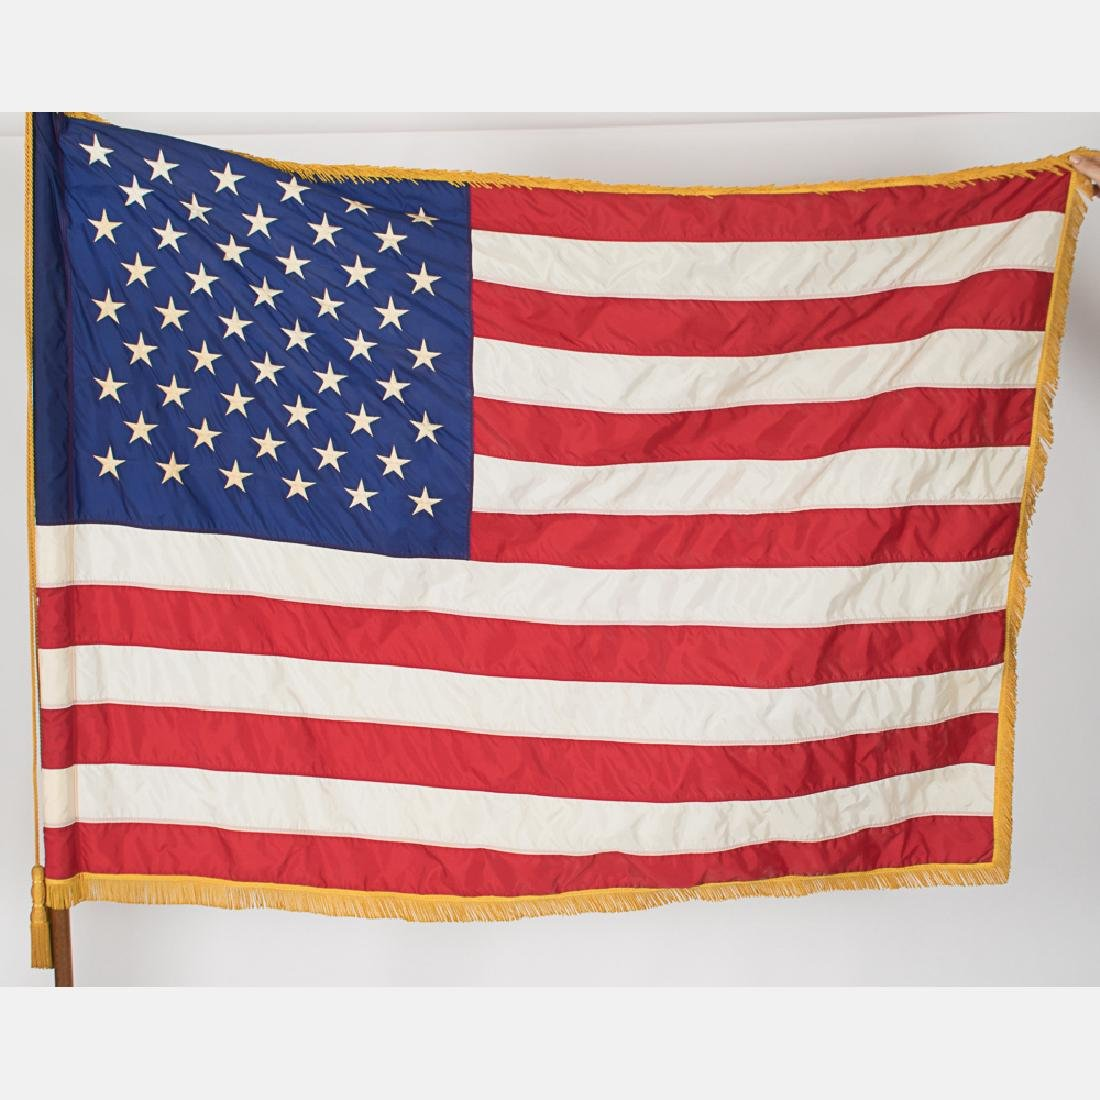 An Embroidered United States Marine Corps Indoor Flag - 3